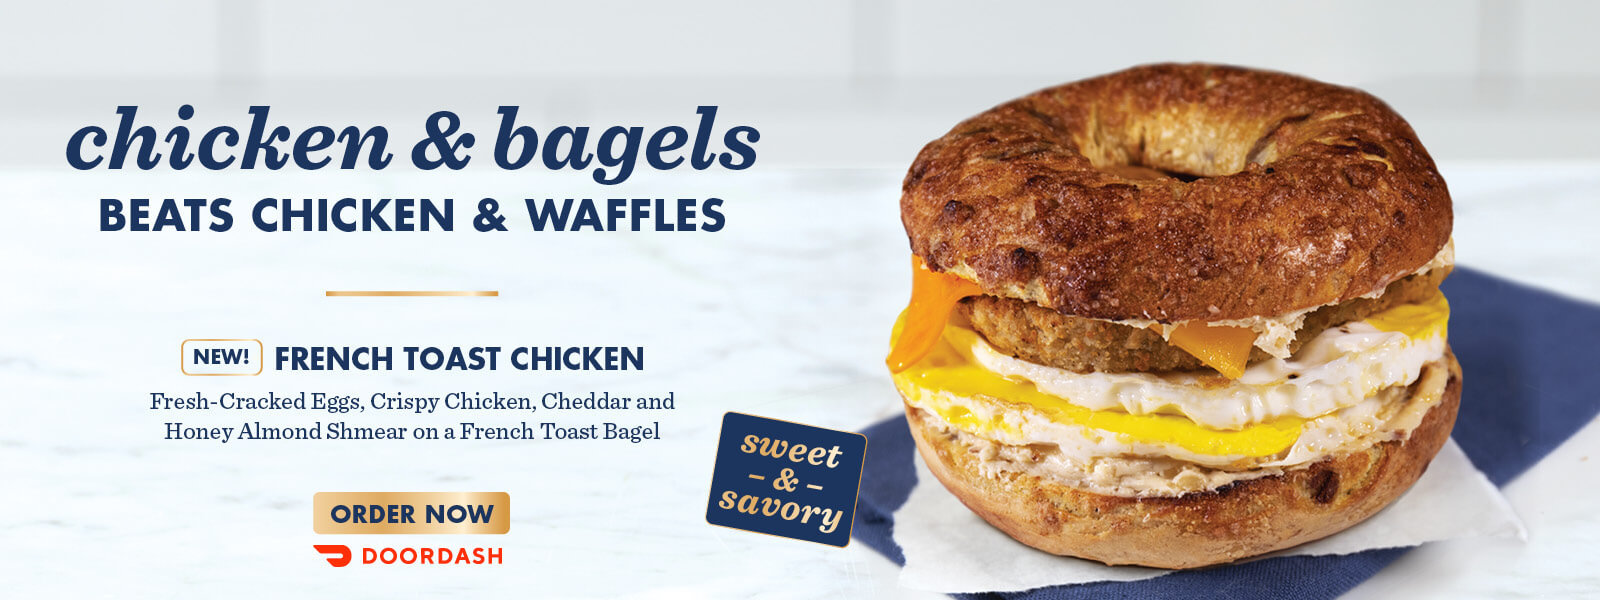 ROTATING SLIDER: Try our new French Toast Chicken Egg Sandwich! Available for a Limited Time.